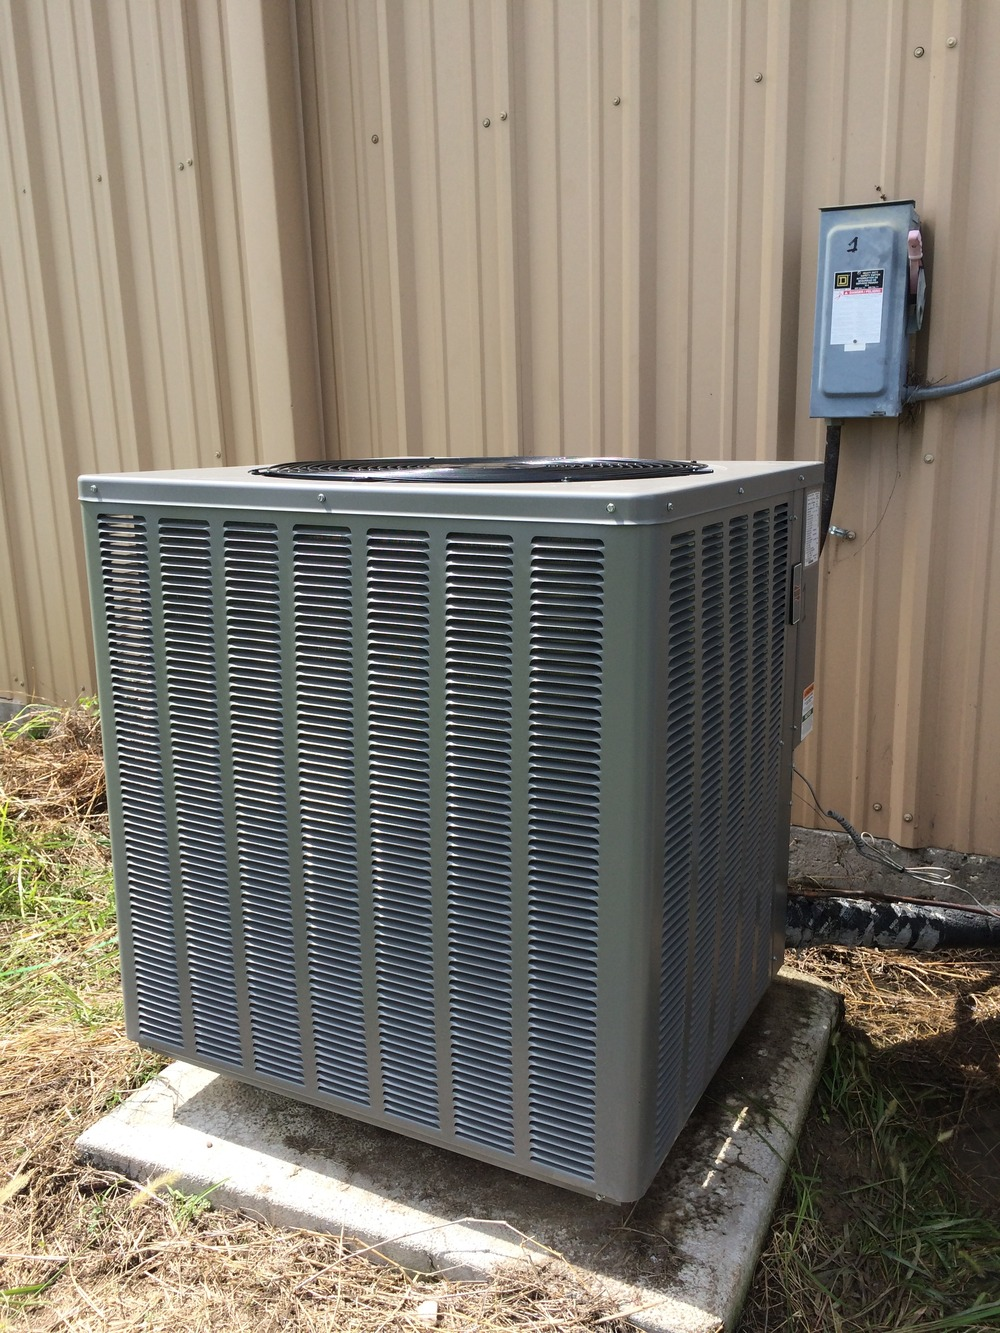 New Ruud Condenser 13 SEER 3 phase 5 ton